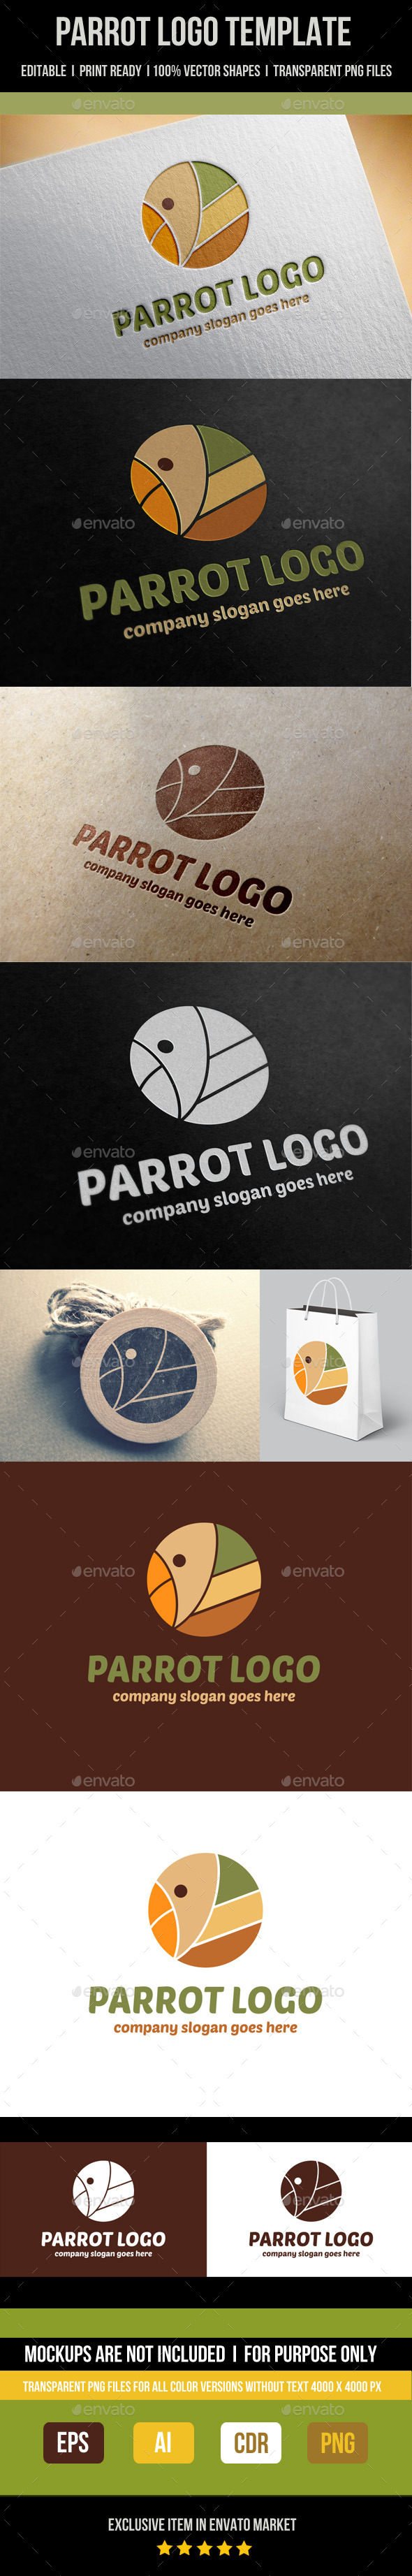 Parrot Logo Template - Abstract Logo Templates